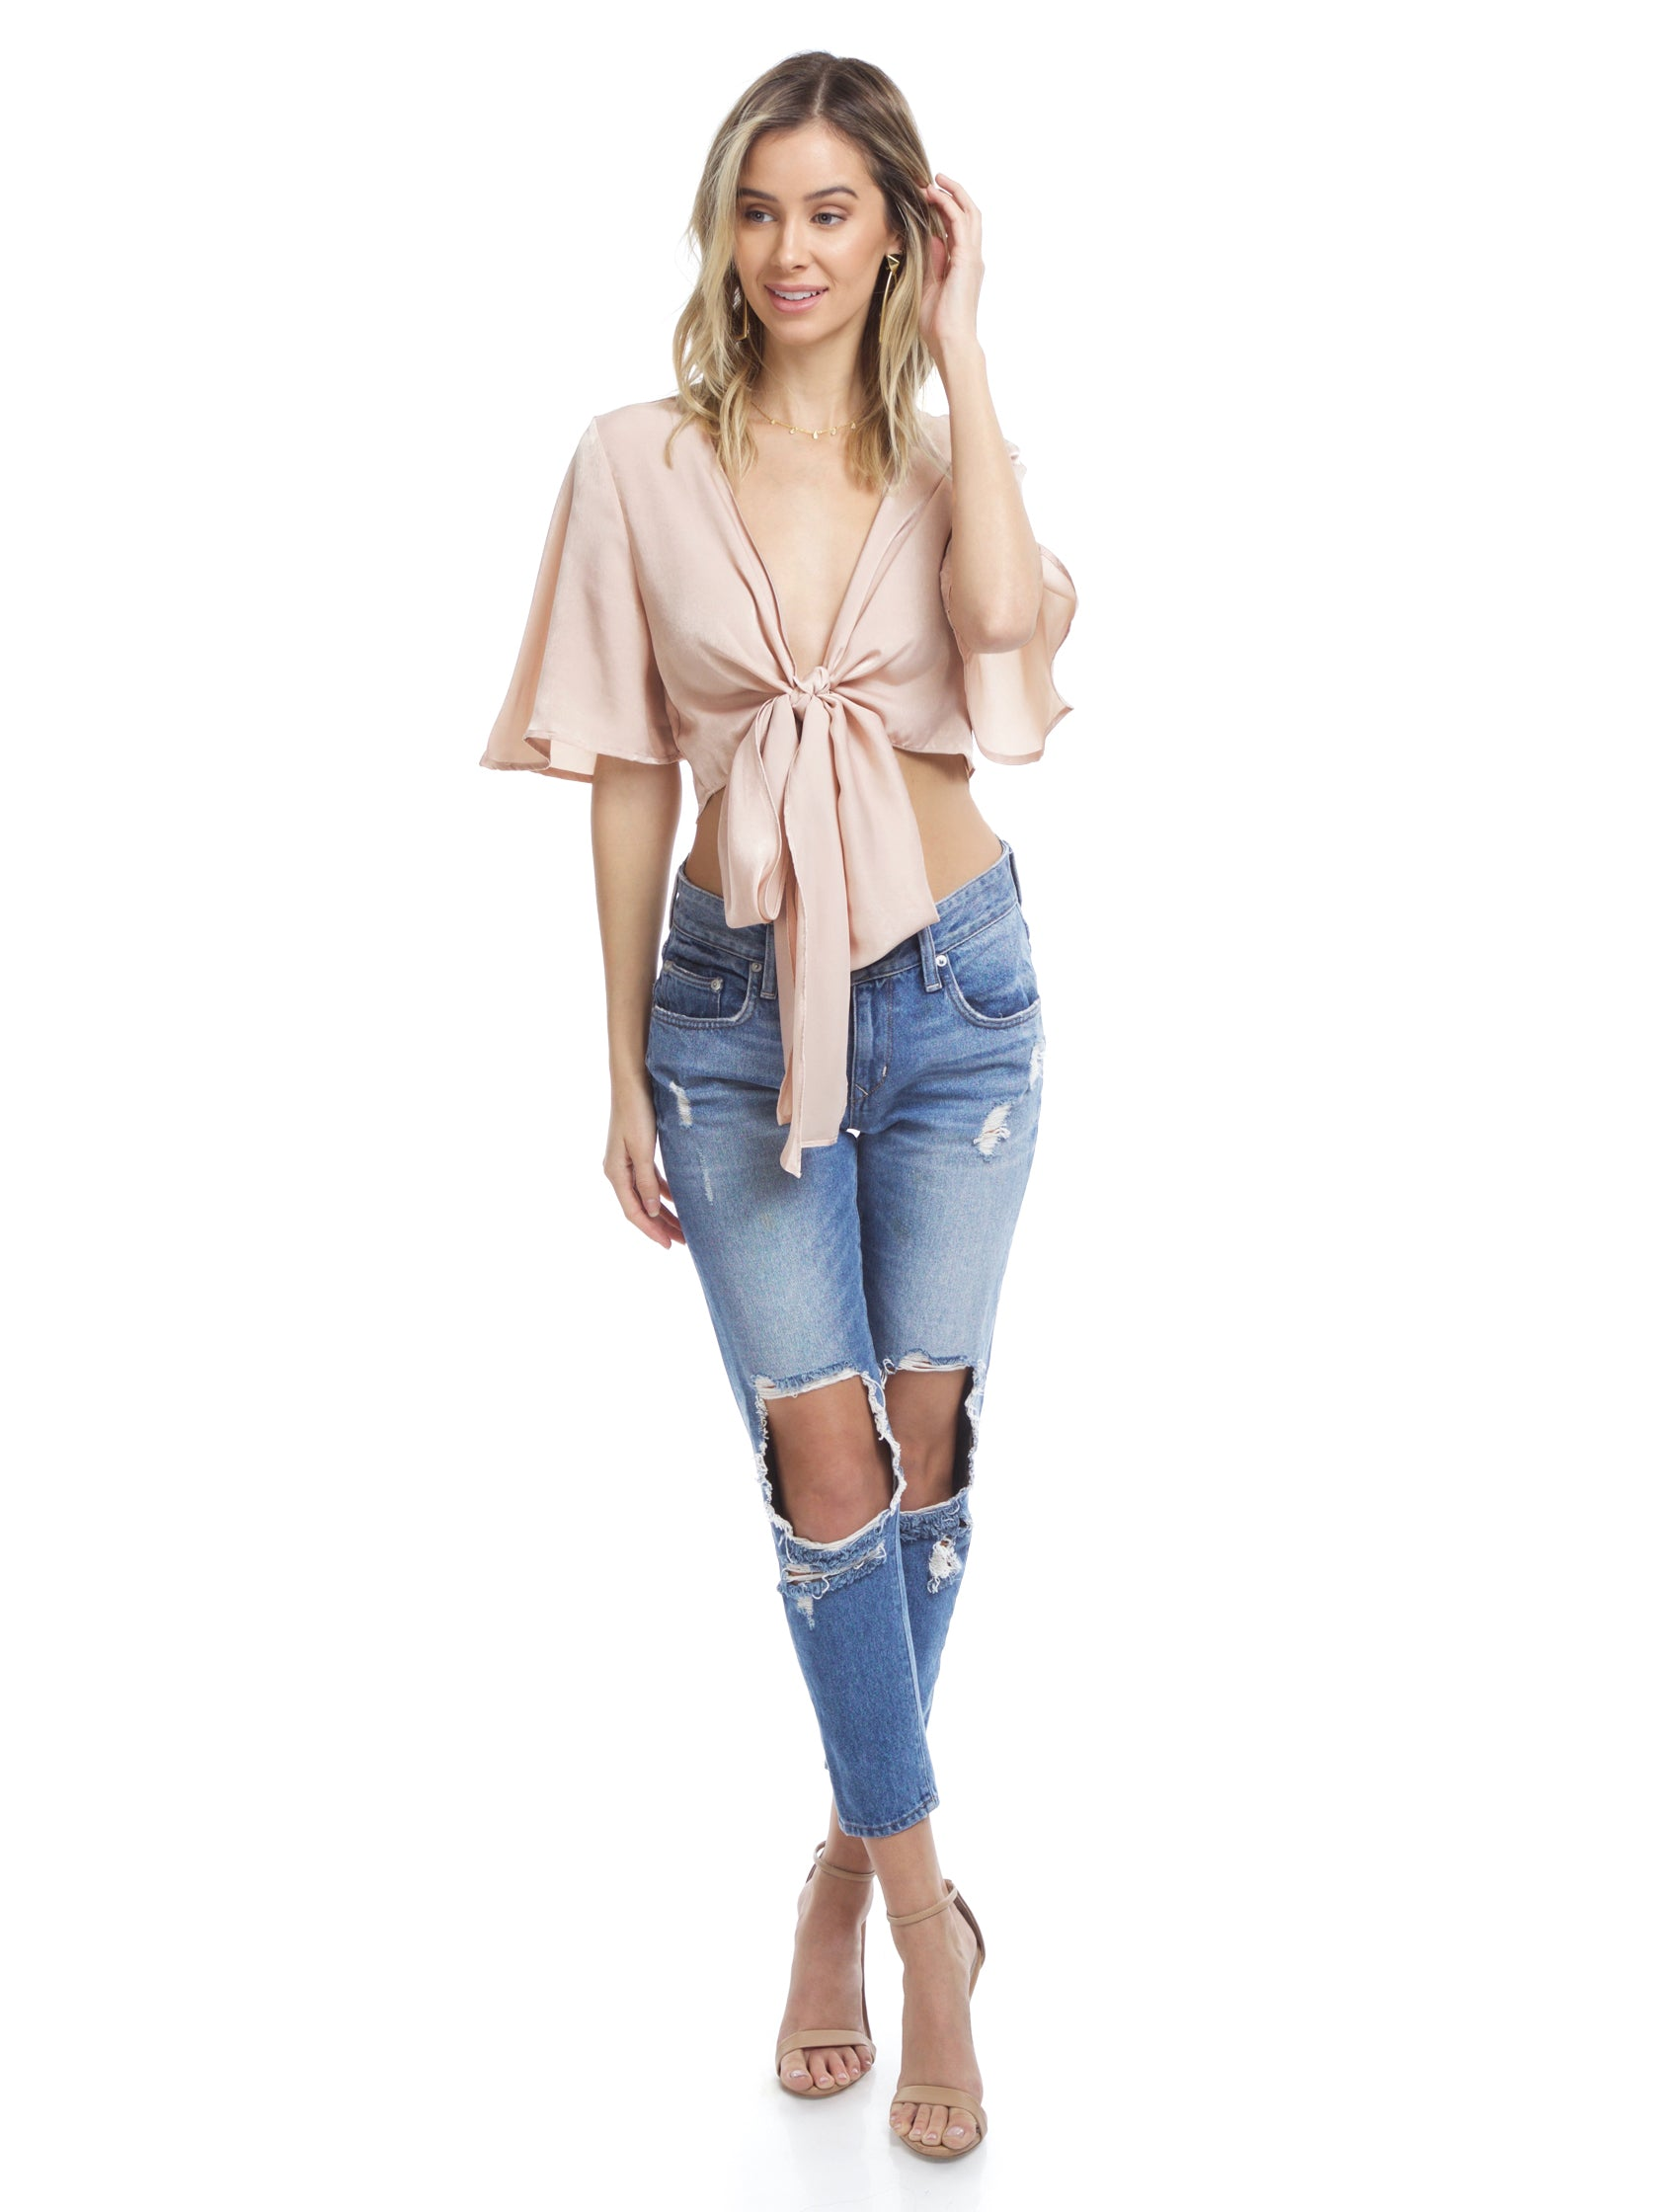 Women outfit in a top rental from FashionPass called Everleigh Crop Top